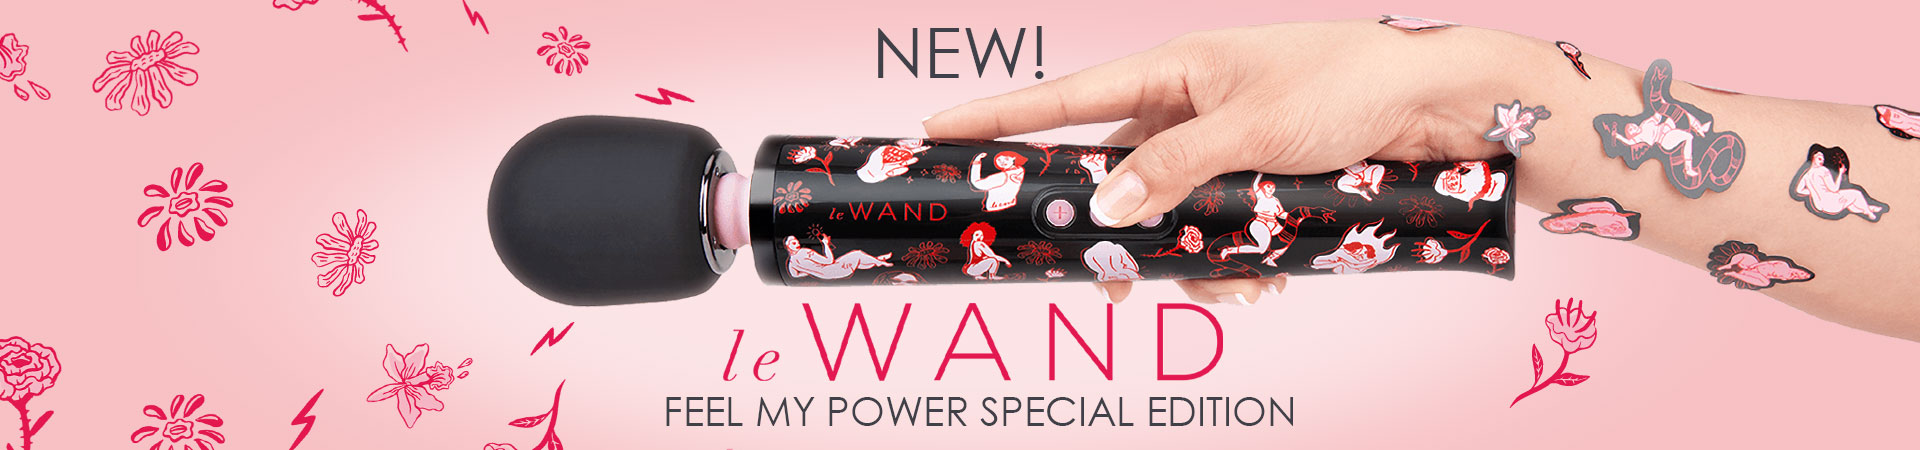 New Le Wand Feel My Power Special Edition